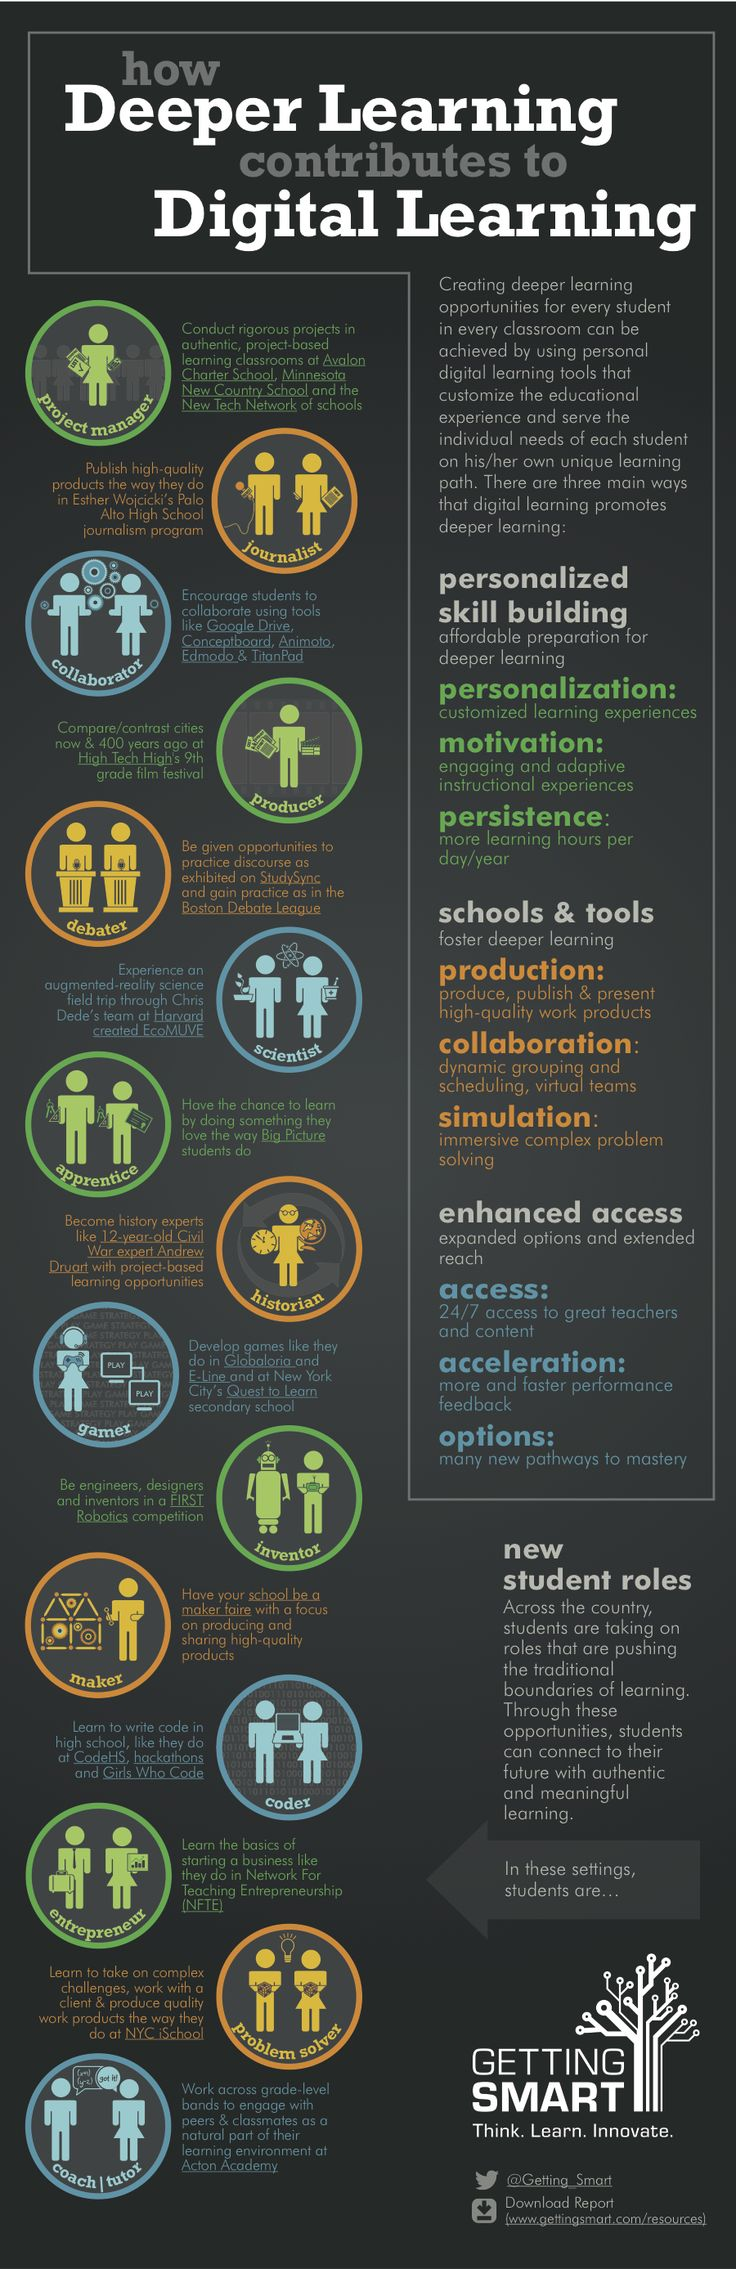 Getting Smart created this infographic that describes how deeper learning opportunities can be created for every student with personal digital learning tools: